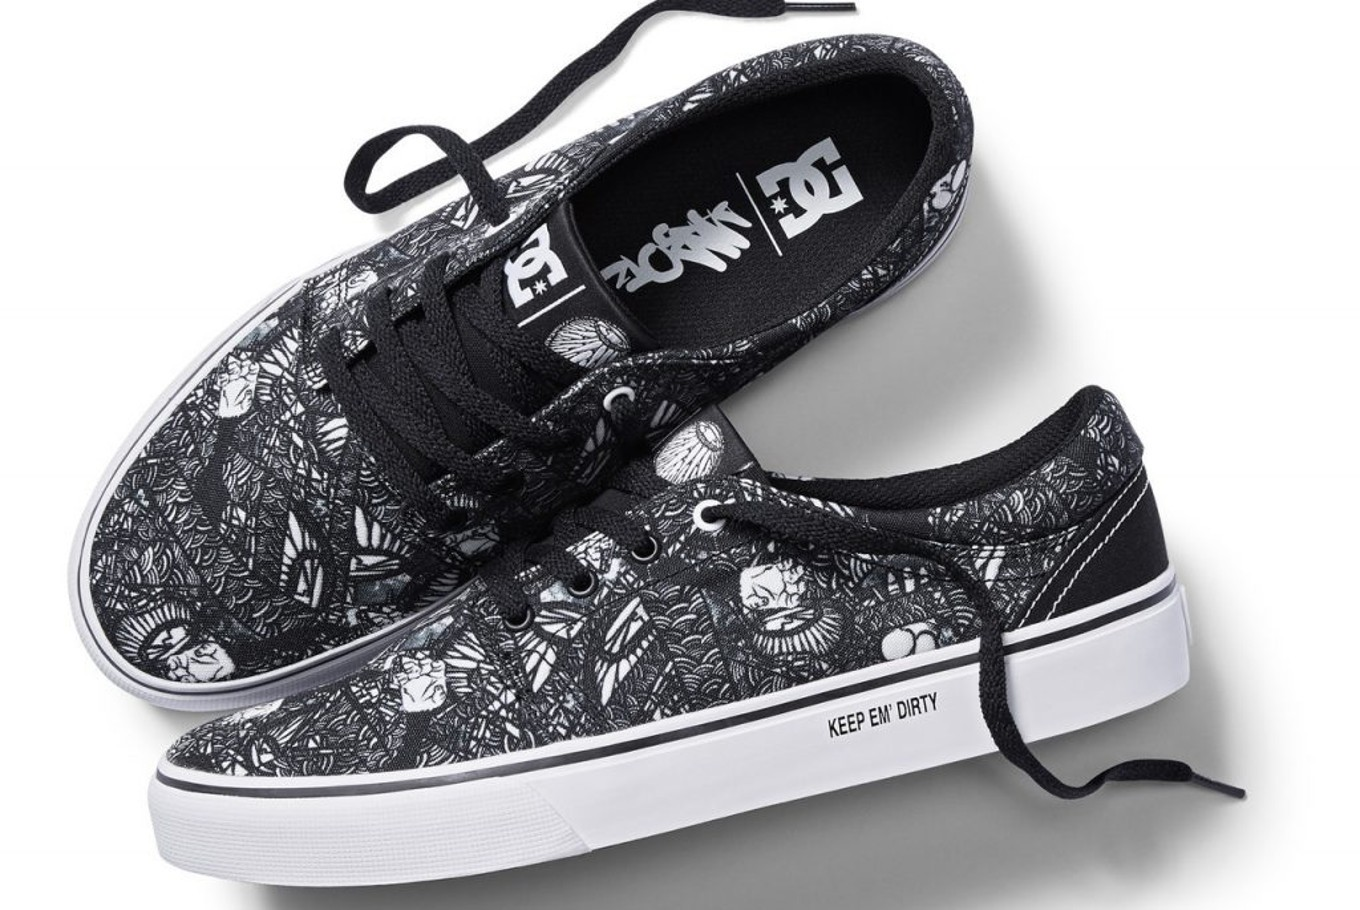 b2df286ddf56 DC Shoes collaborates with Indonesian graffiti artist Darbotz ...